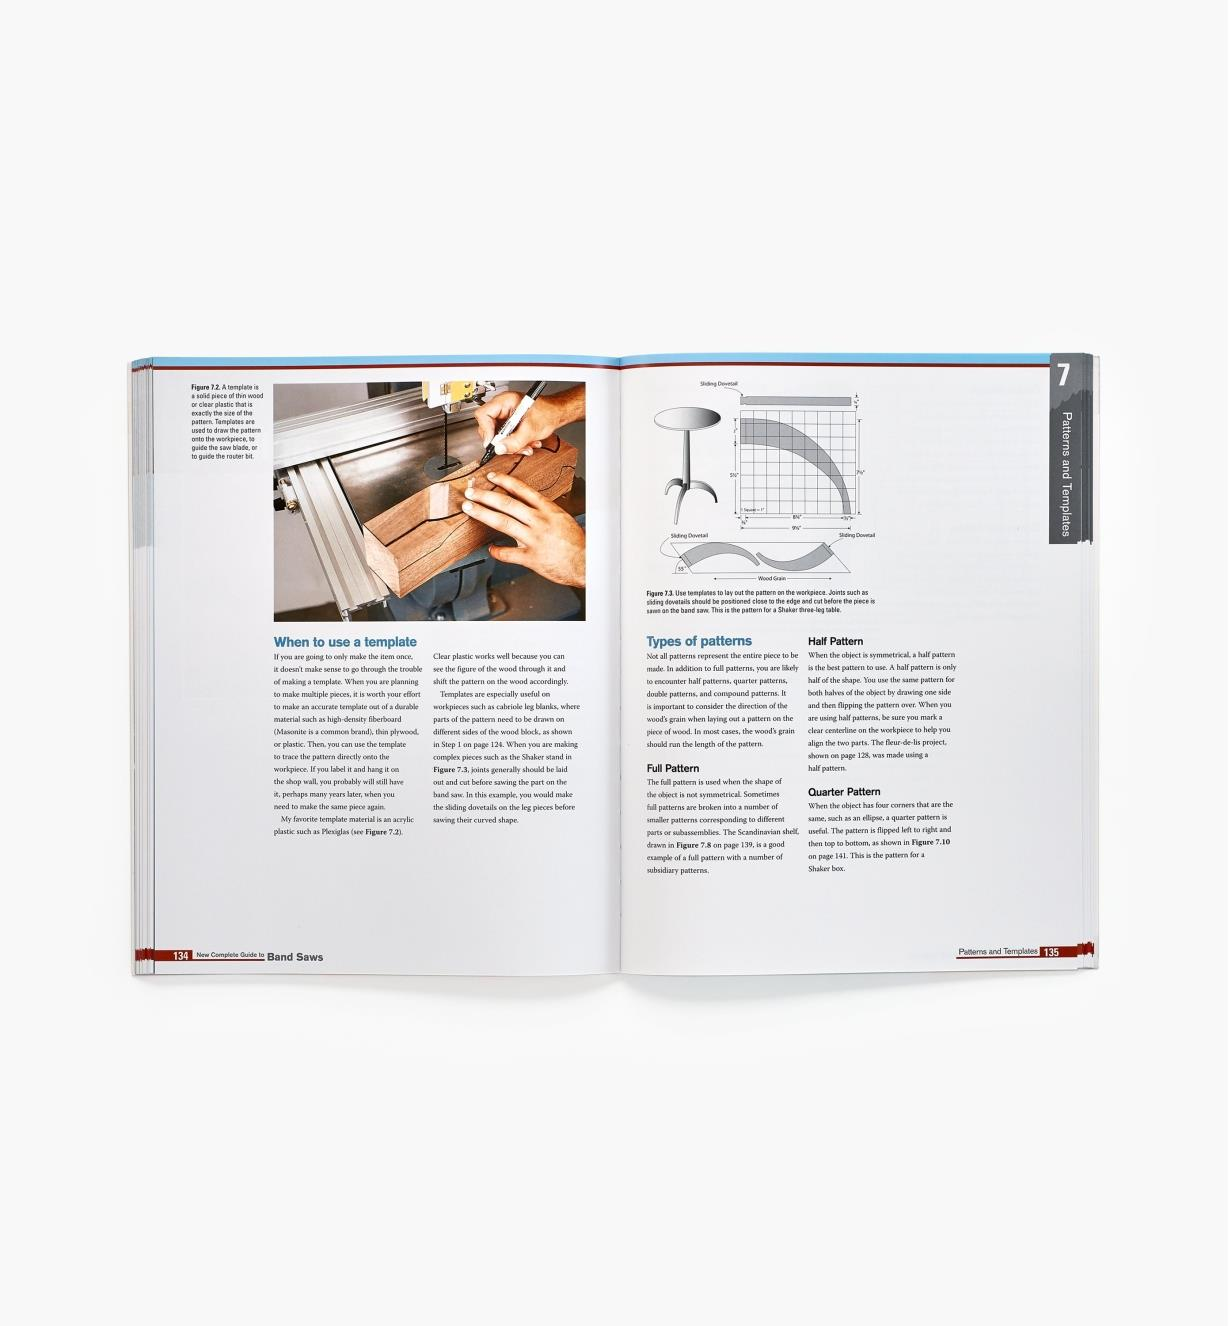 49L5048 - New Complete Guide to the BandSaw